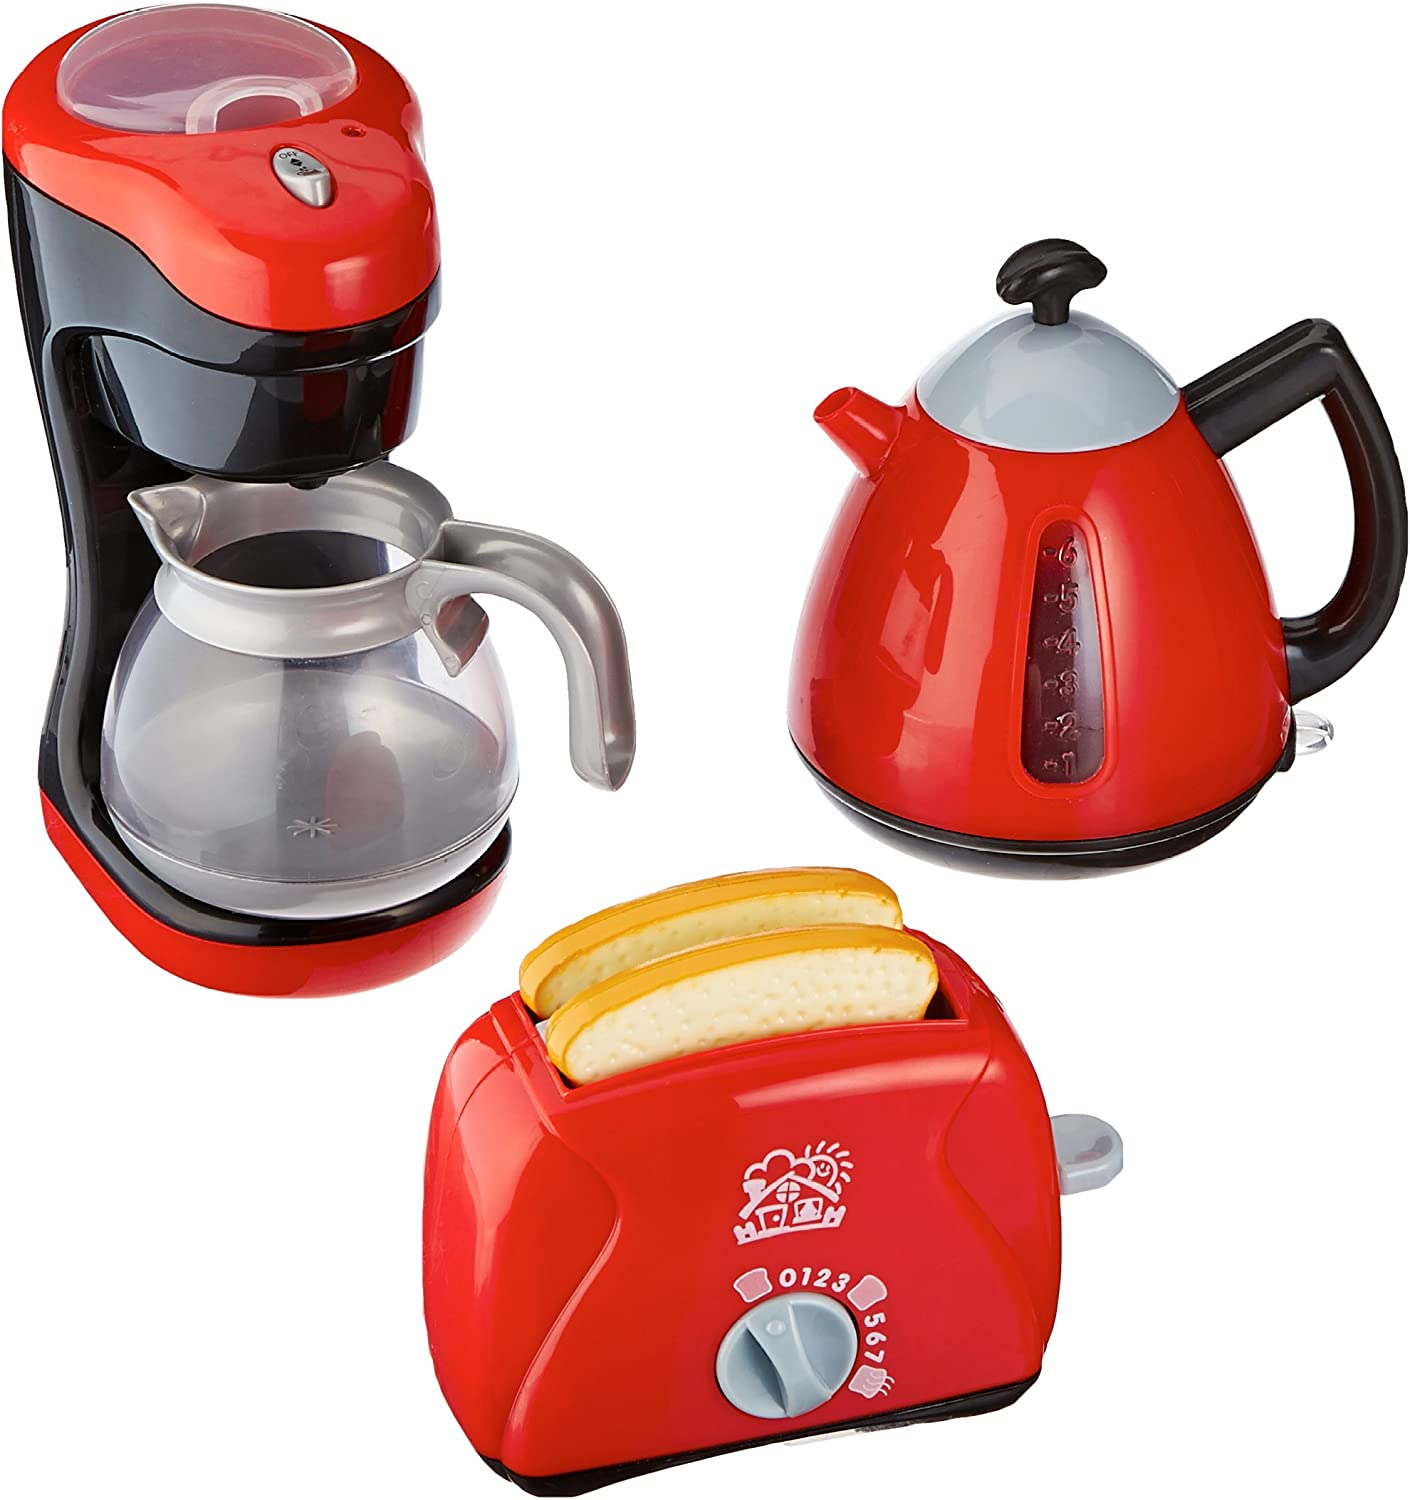 PlayGo Kitchen Chef Collection (My Toaster, Coffee Maker, Tea Time Kettle) for Your Little Chef | Pretend Play Home Kitchen Appliances 3Piece Play Set for Kids Children Toddlers